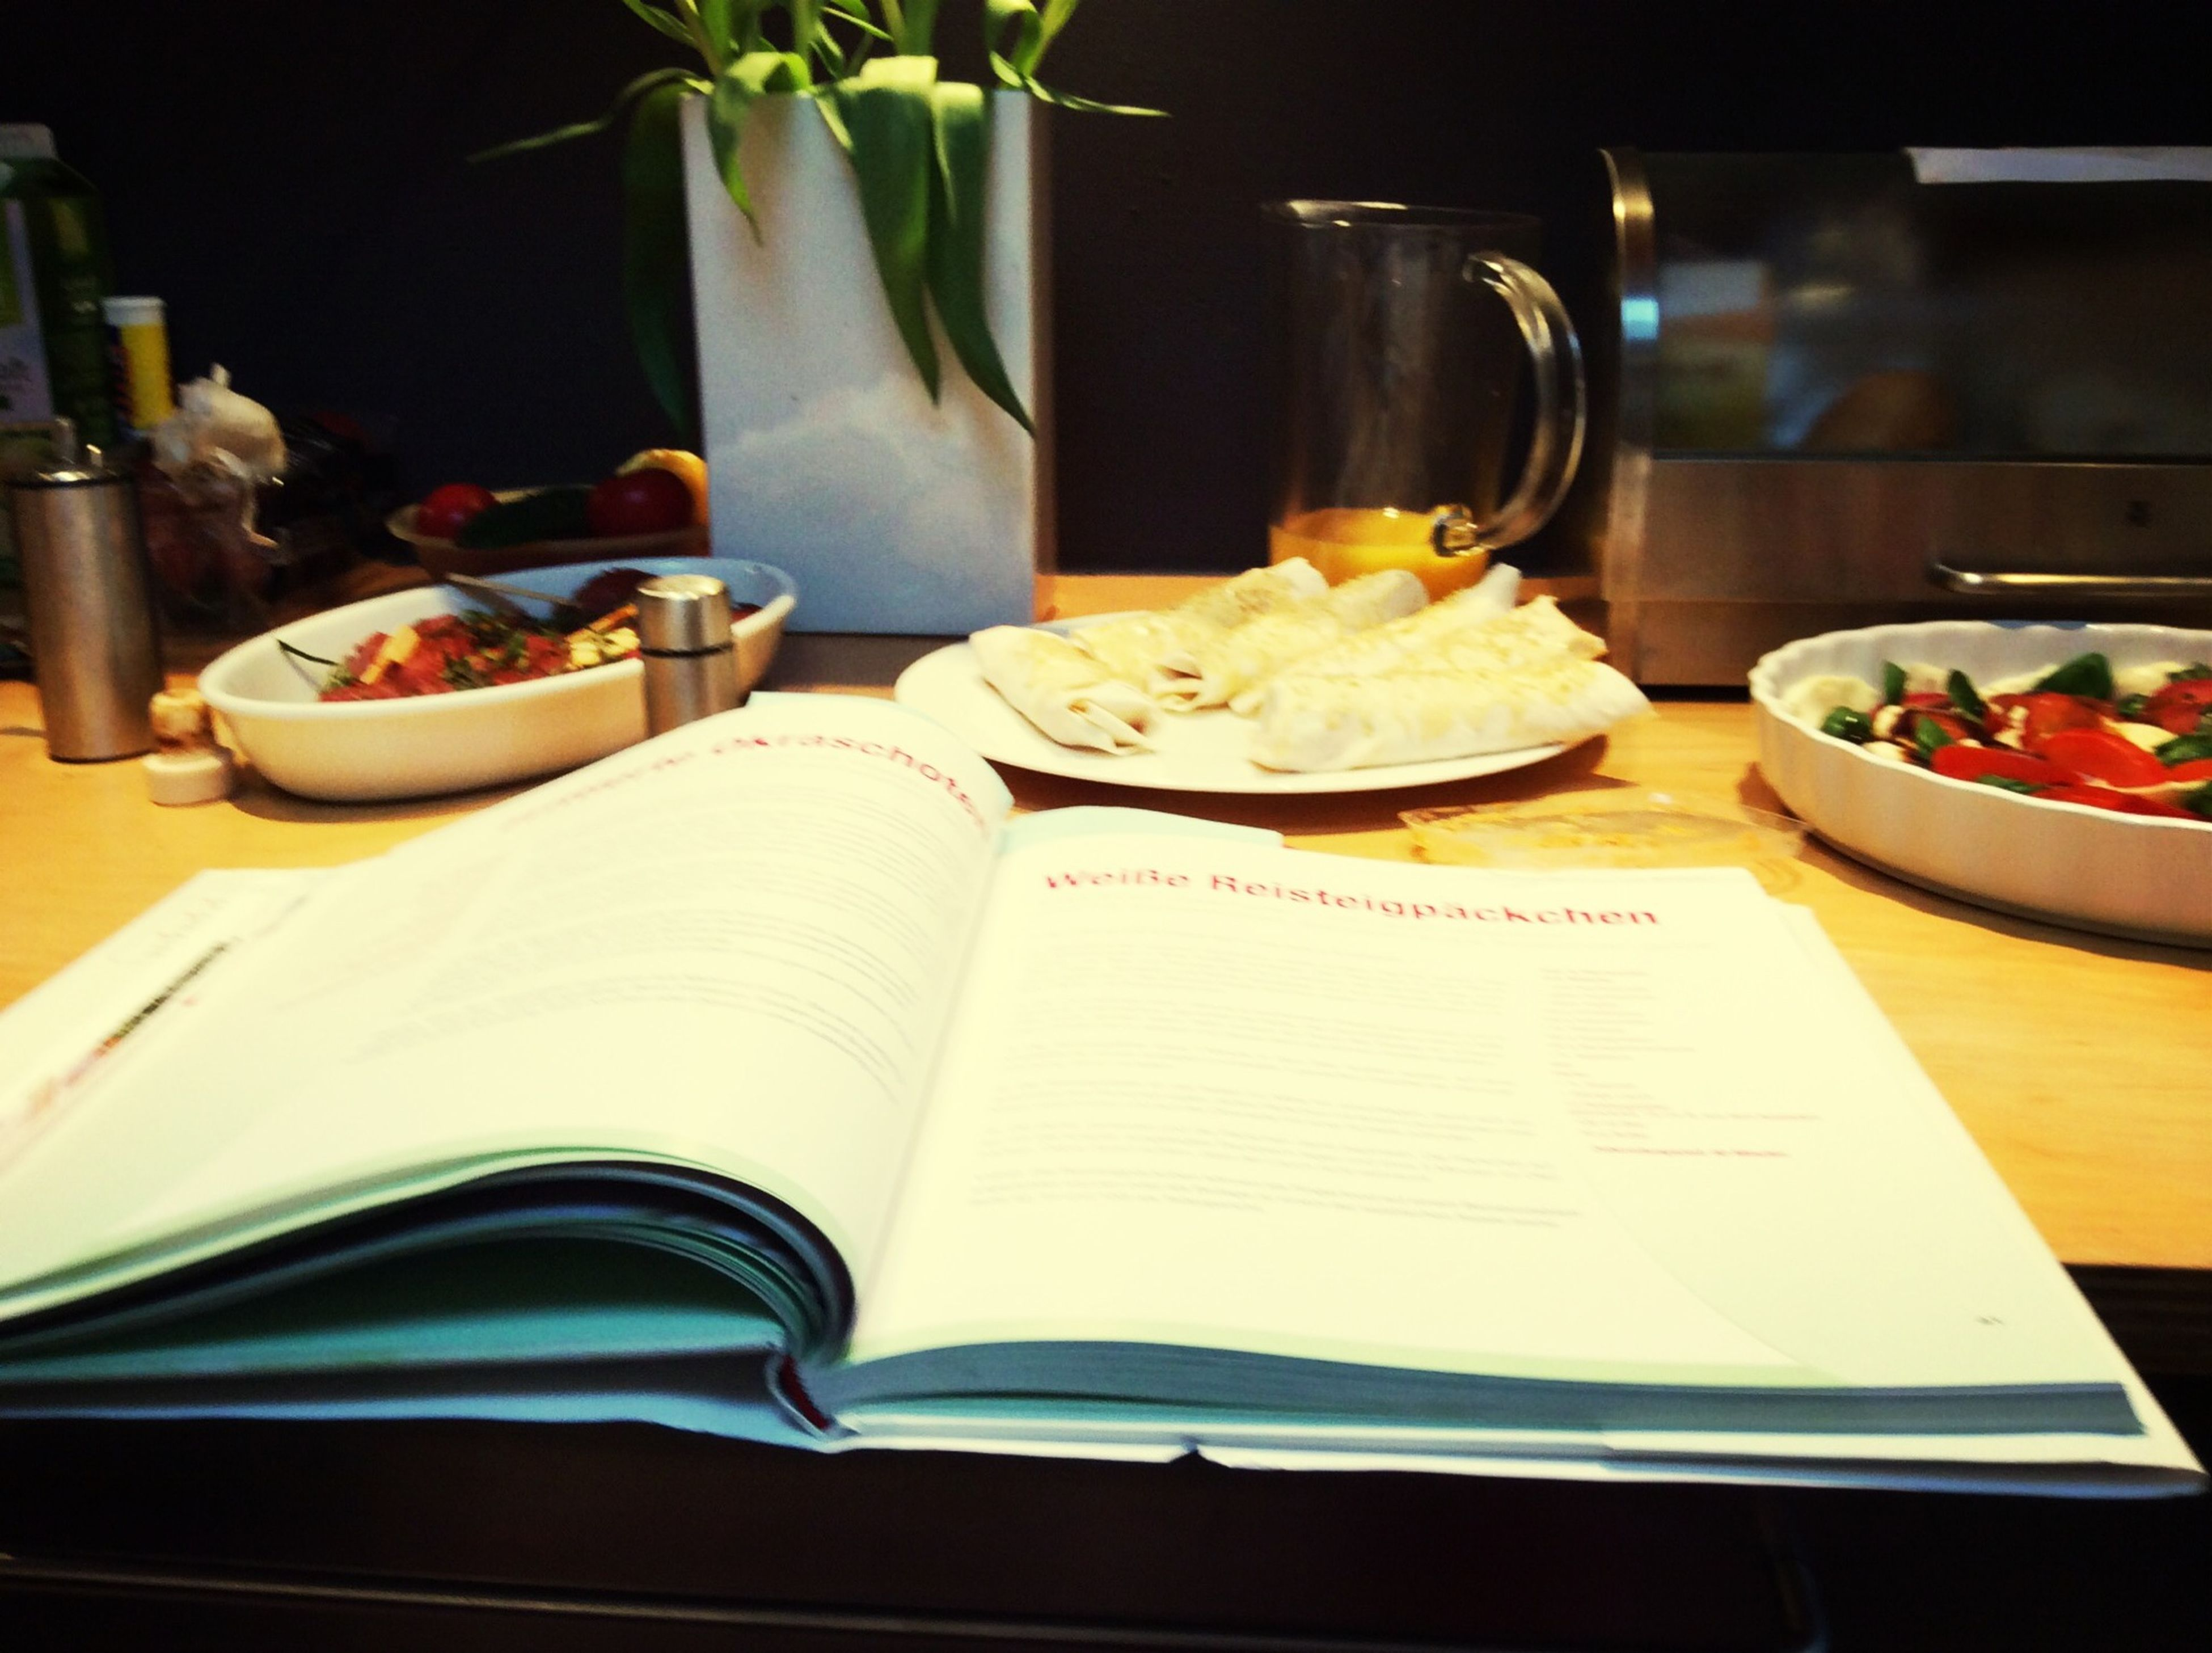 indoors, food and drink, table, food, freshness, variation, restaurant, still life, plate, choice, healthy eating, dining table, book, high angle view, ready-to-eat, paper, for sale, close-up, incidental people, no people